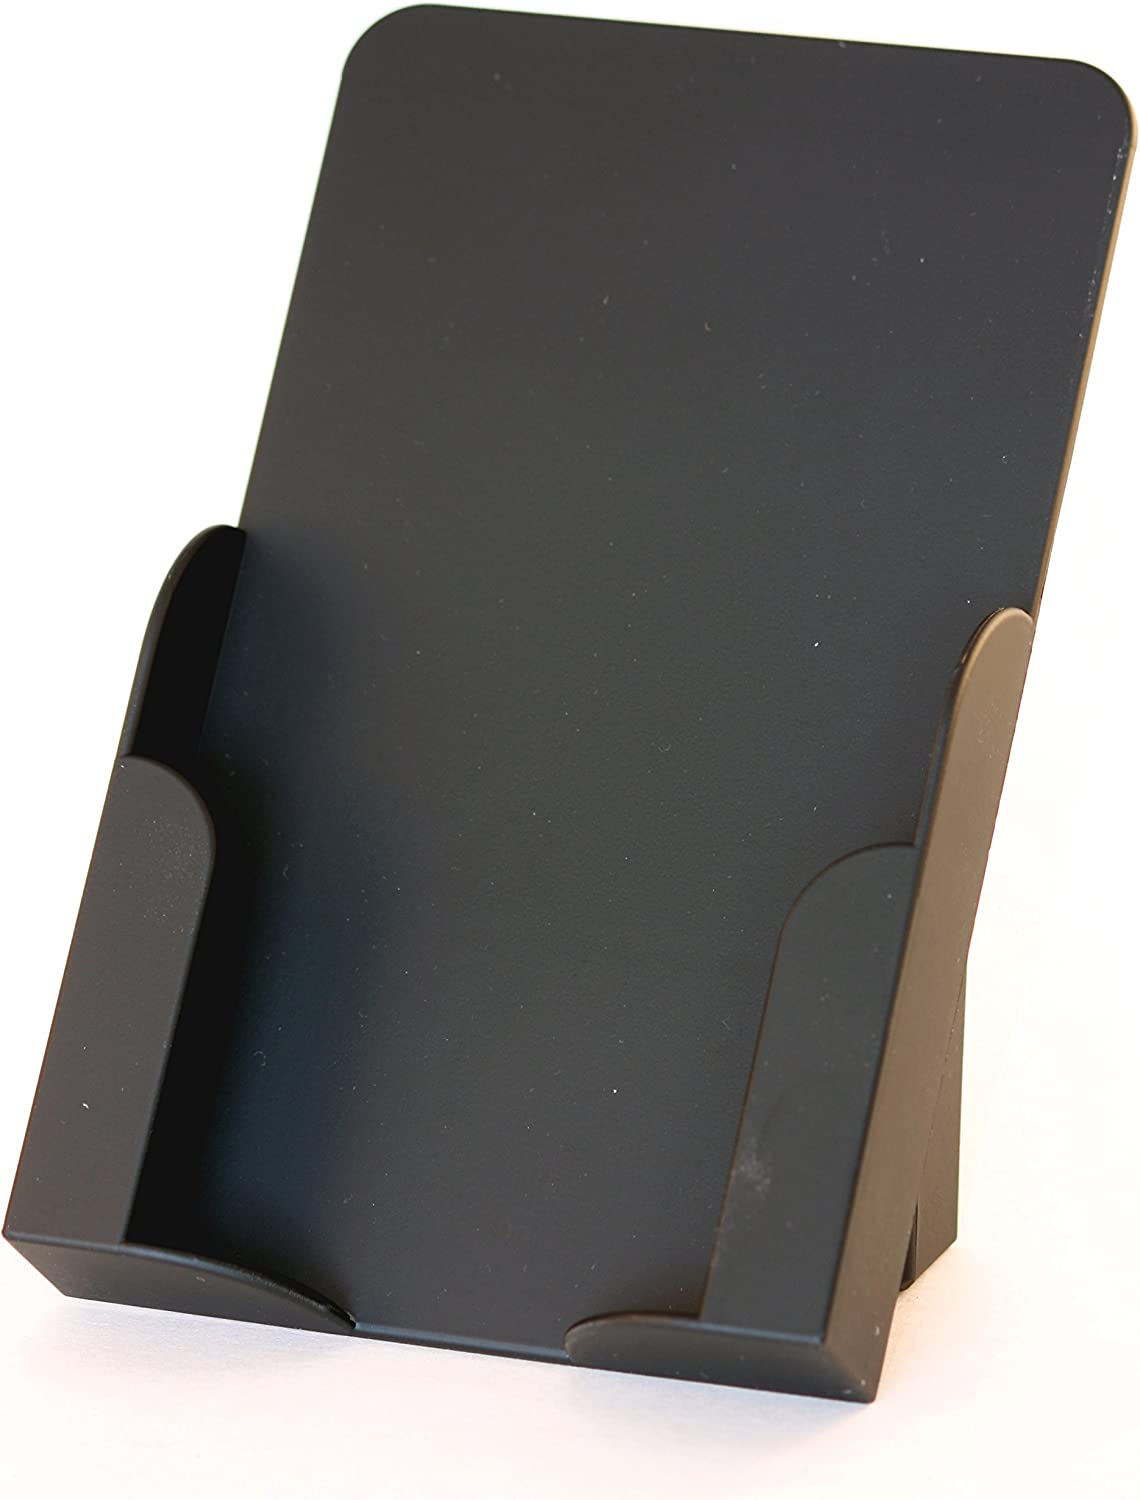 Medium RPC Phone Holder Converts The Business Card Holder Into a Cell Phone Holder in Select 2009-15 Dodge Ram Trucks